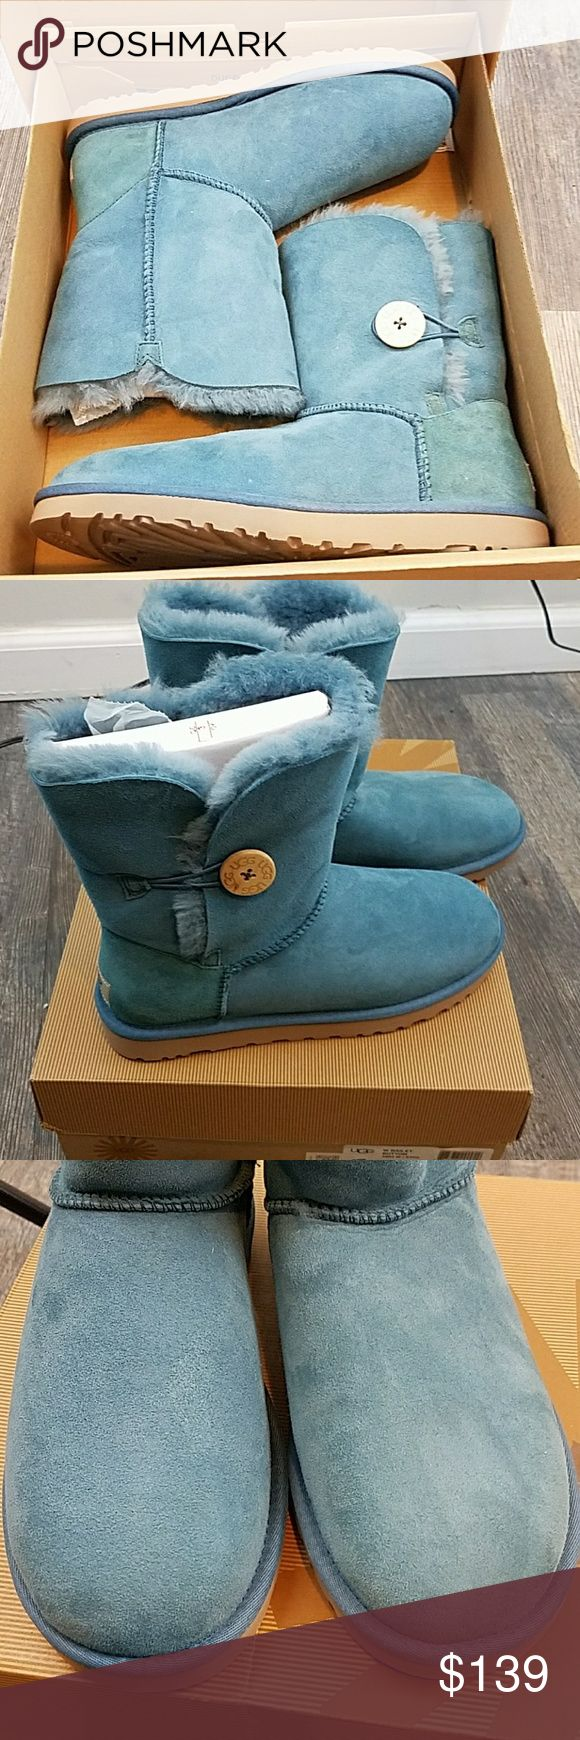 UGG Bailey Button Boots 5803 w/BOX Brand New In box Ugg bailey button boots. Looks like a medium blue color UGG Shoes Winter  Rain Boots